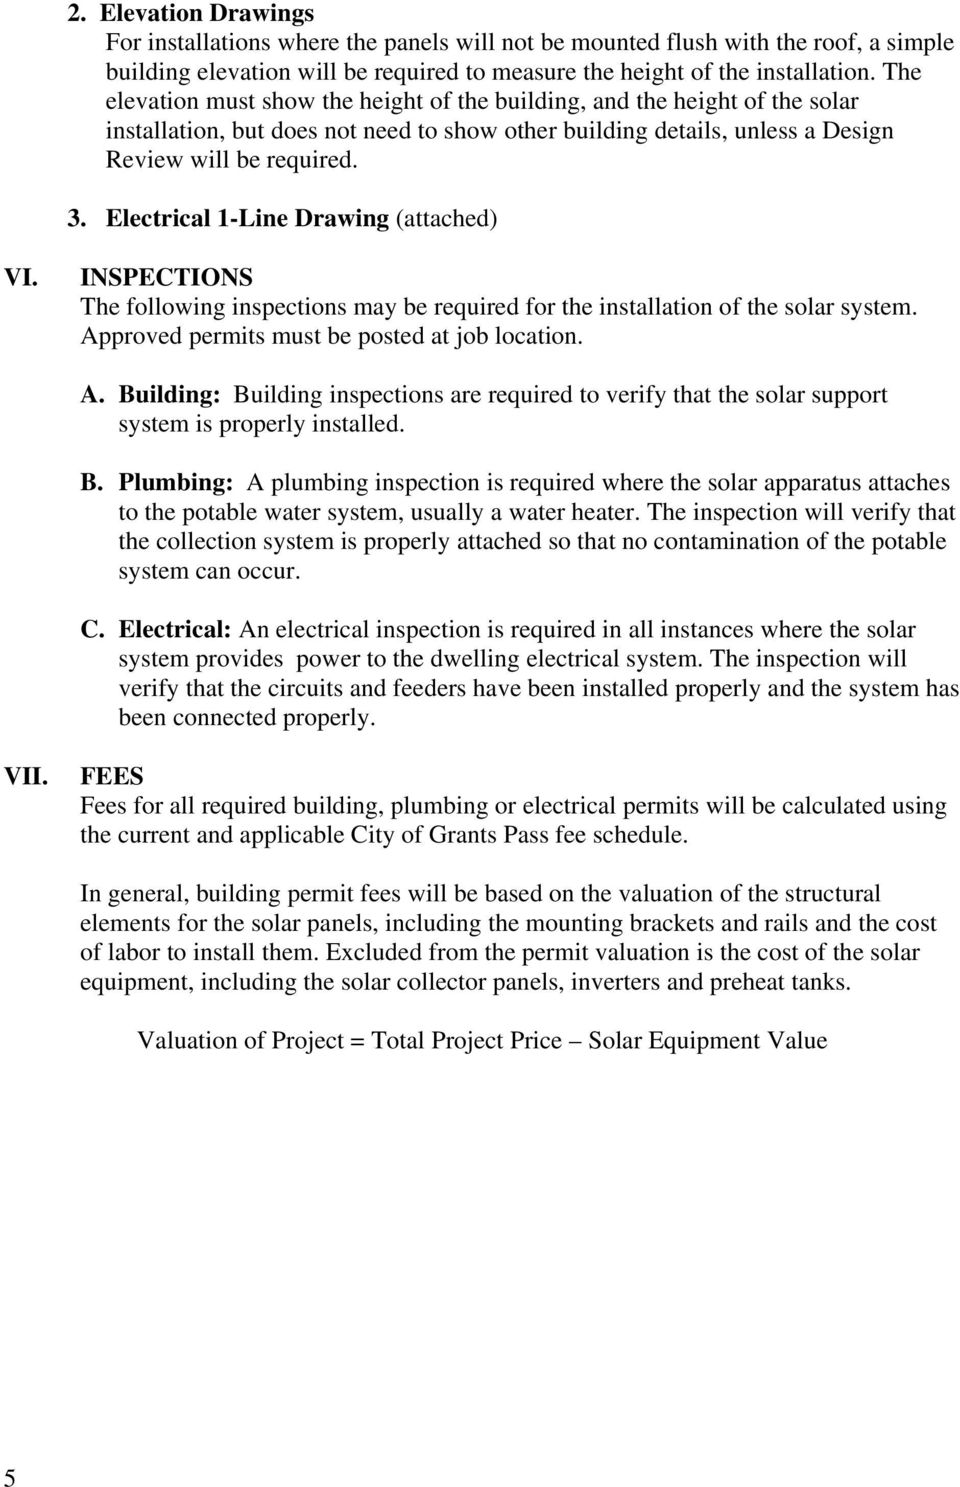 Electrical 1-Line Drawing (attached) VI. INSPECTIONS The following inspections may be required for the installation of the solar system. Ap